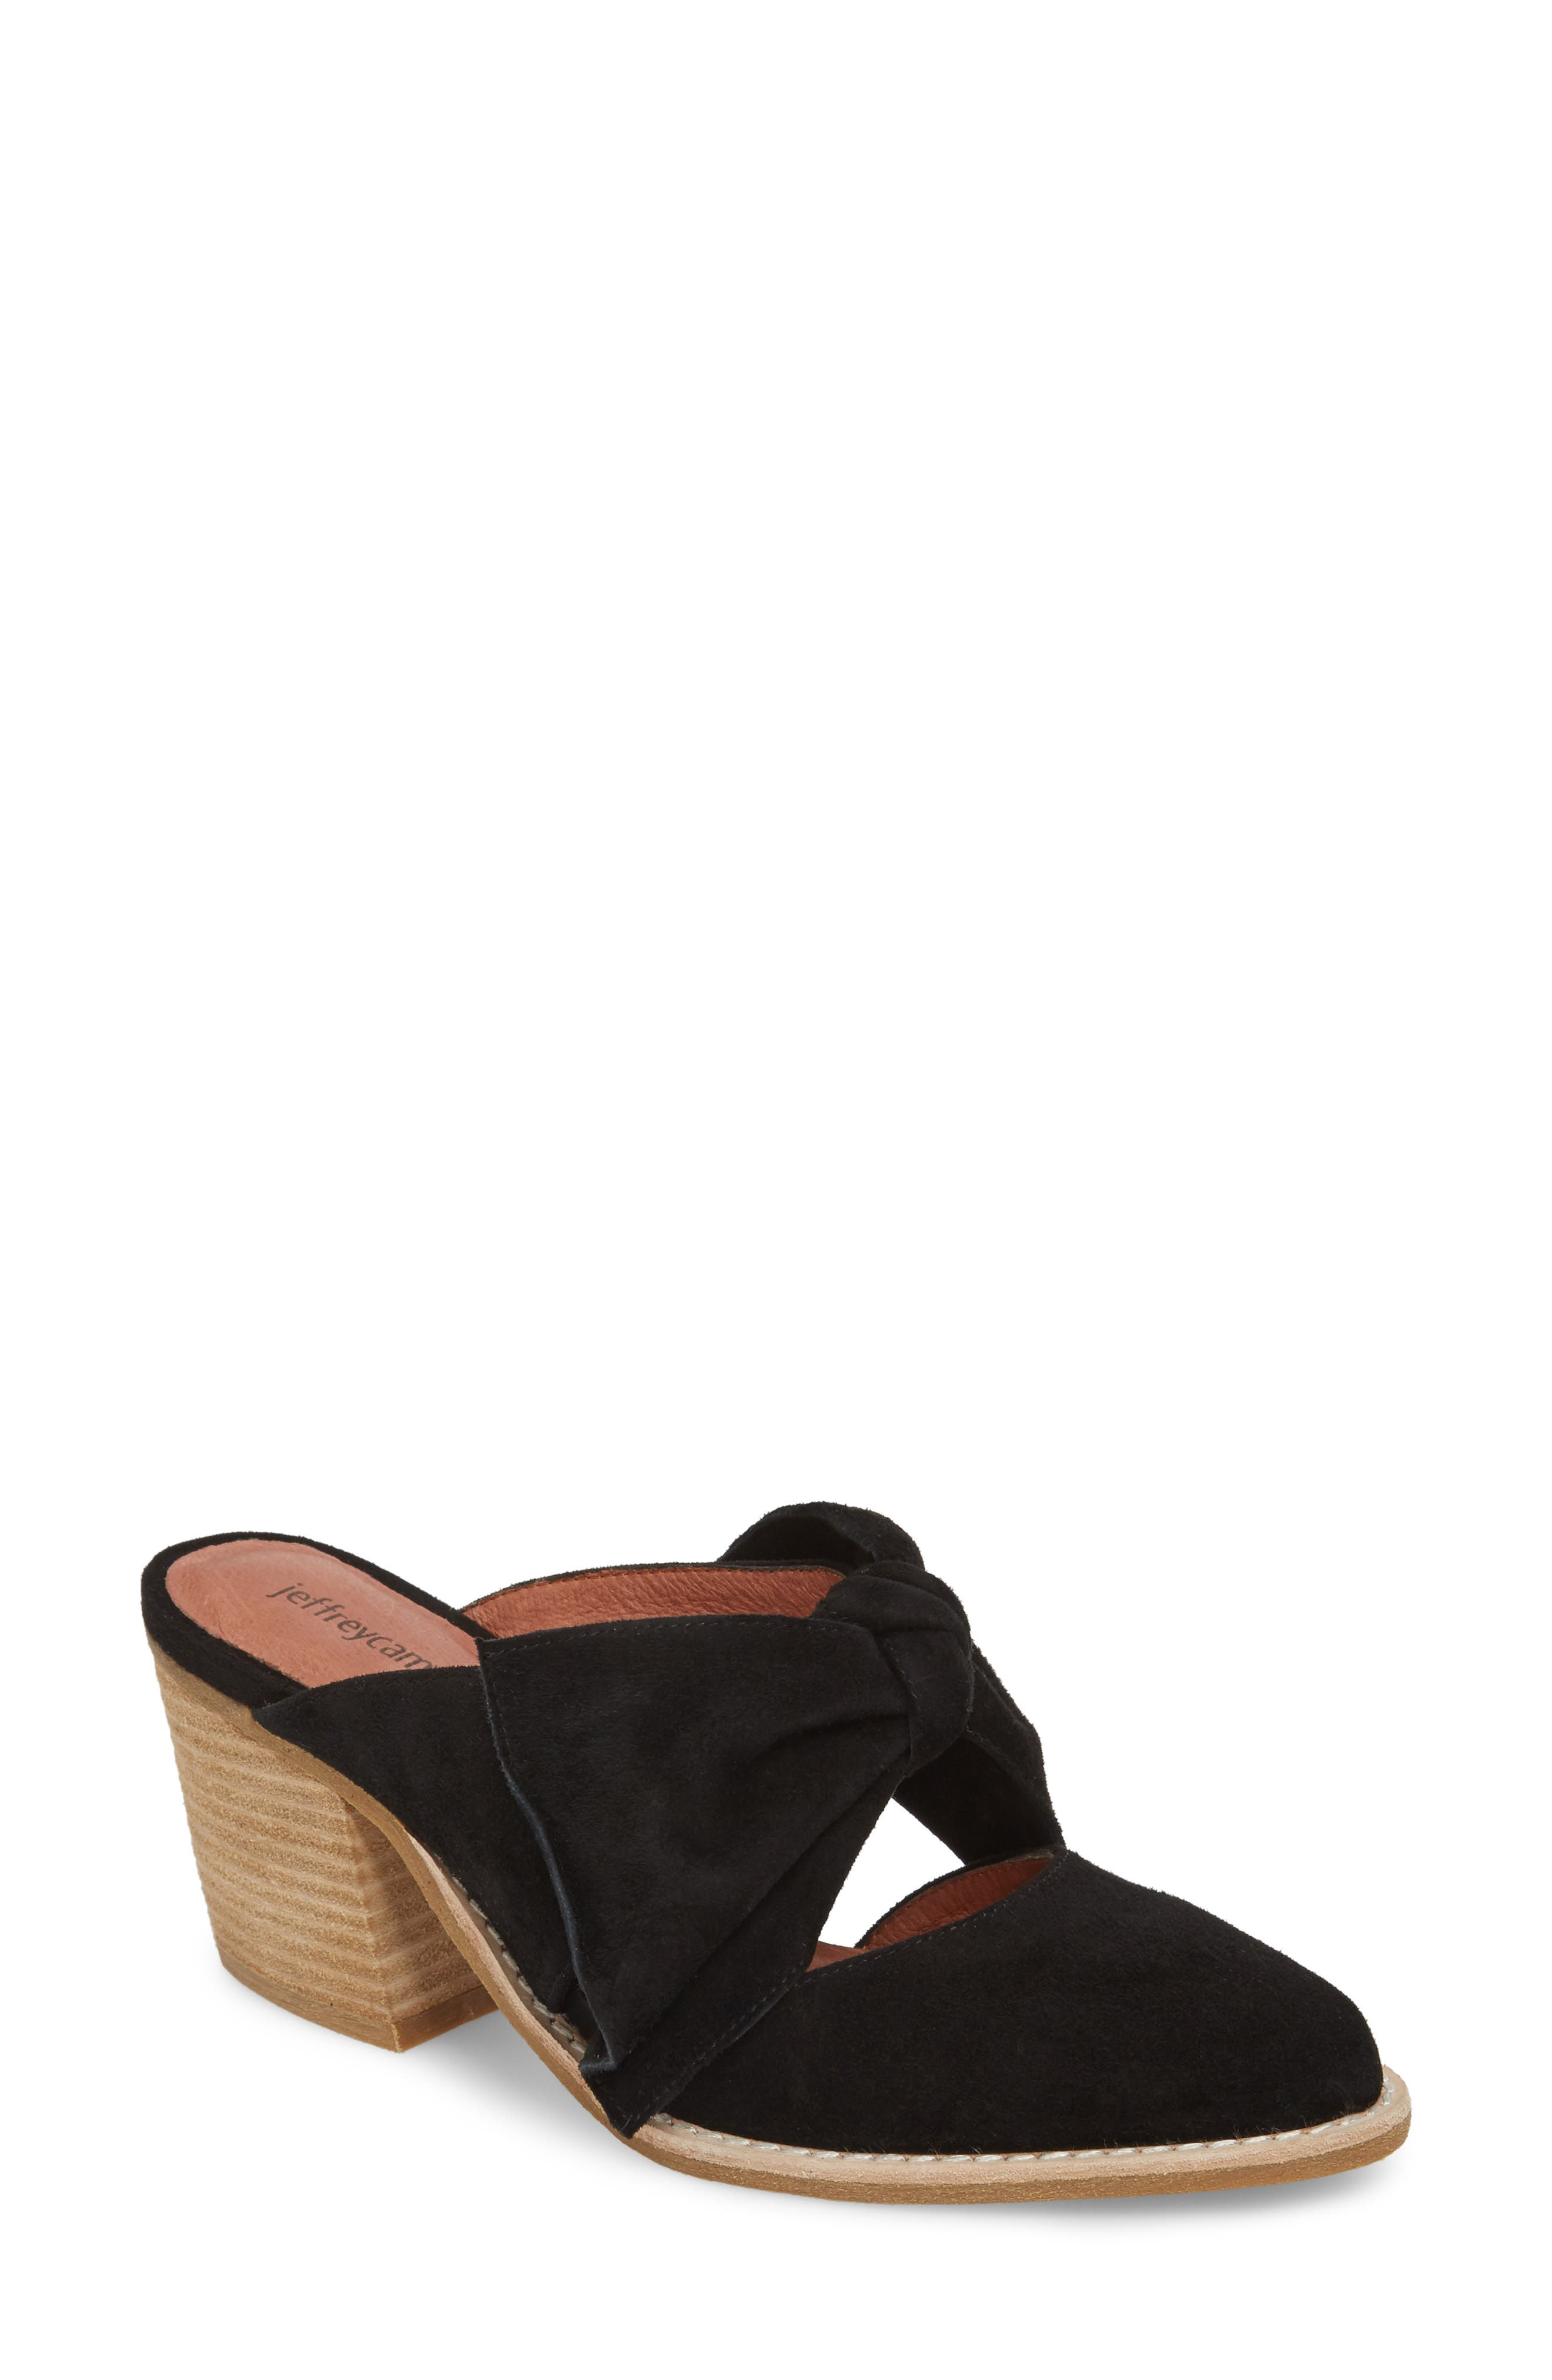 JEFFREY CAMPBELL,                             Cyrus Knotted Mary Jane Mule,                             Main thumbnail 1, color,                             001